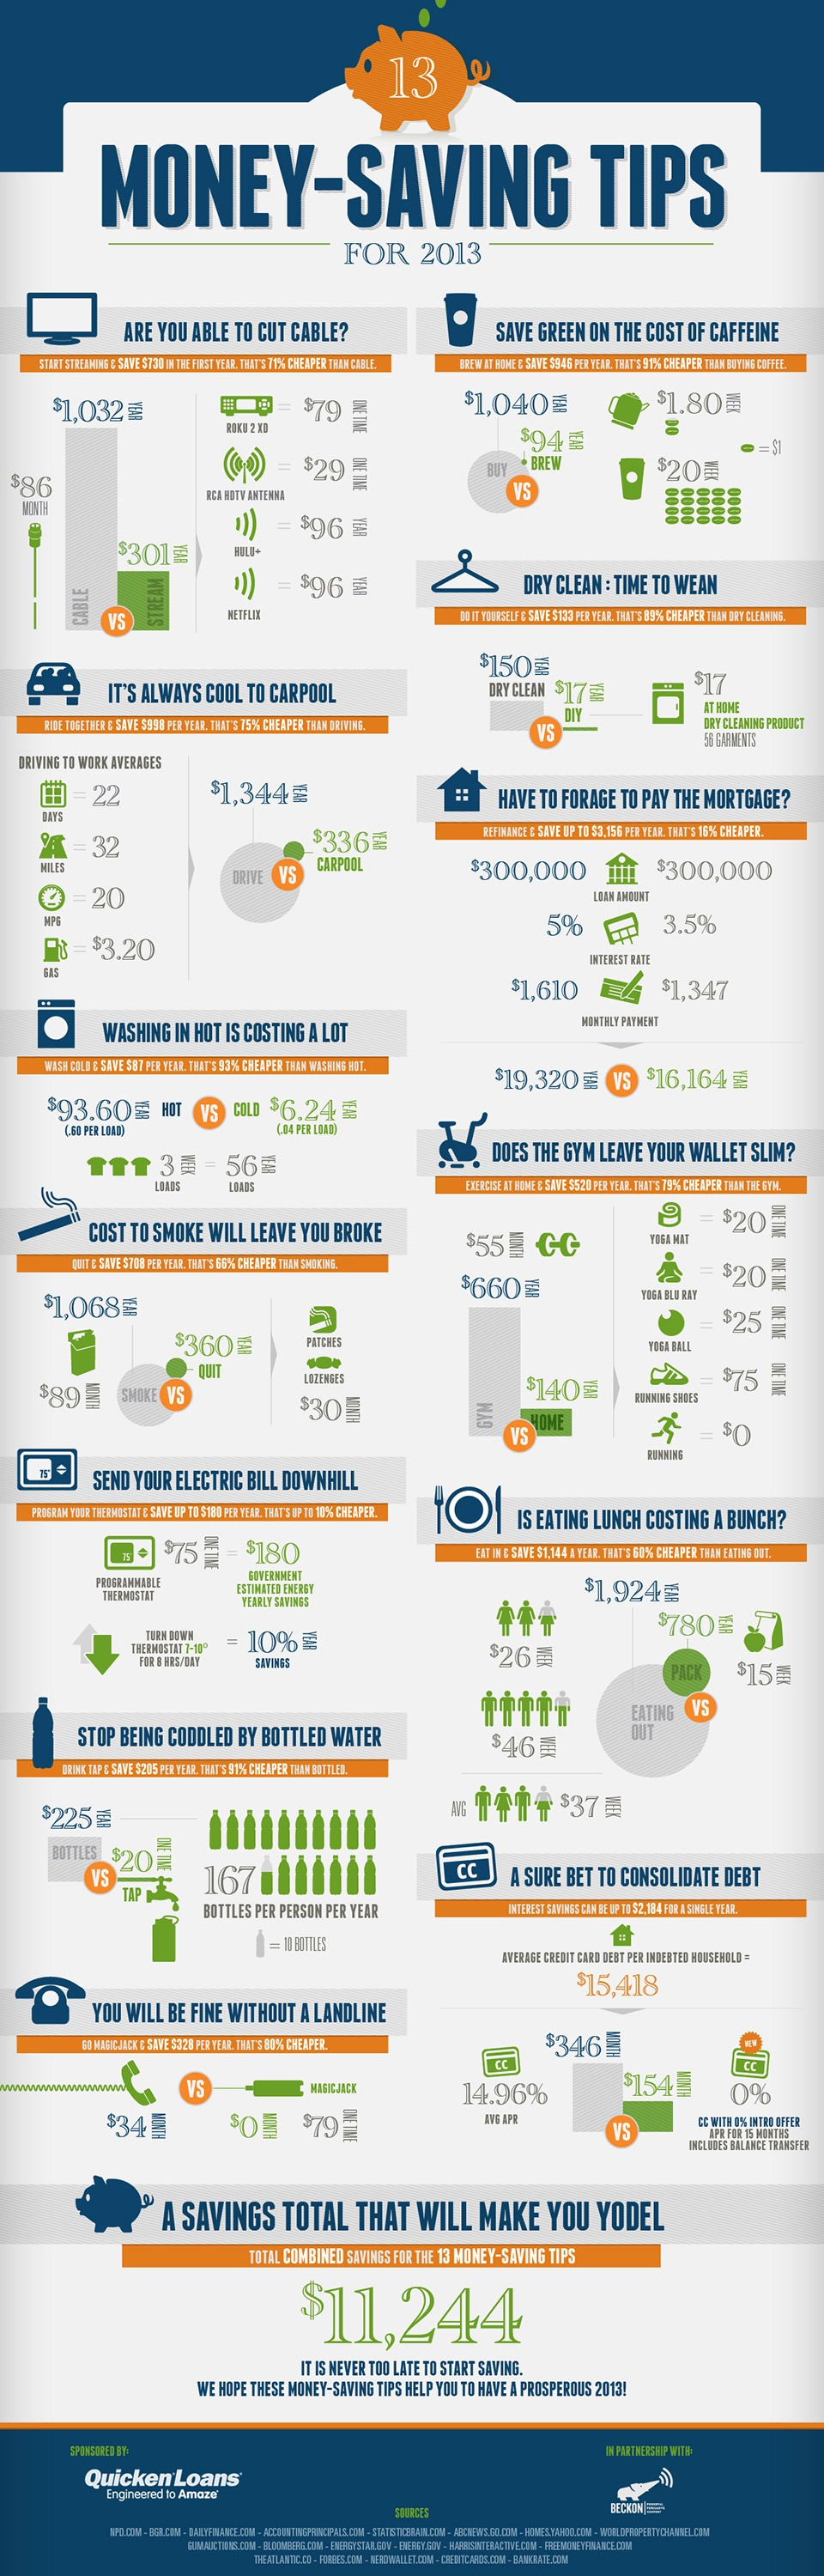 savings-infographic-large.jpg